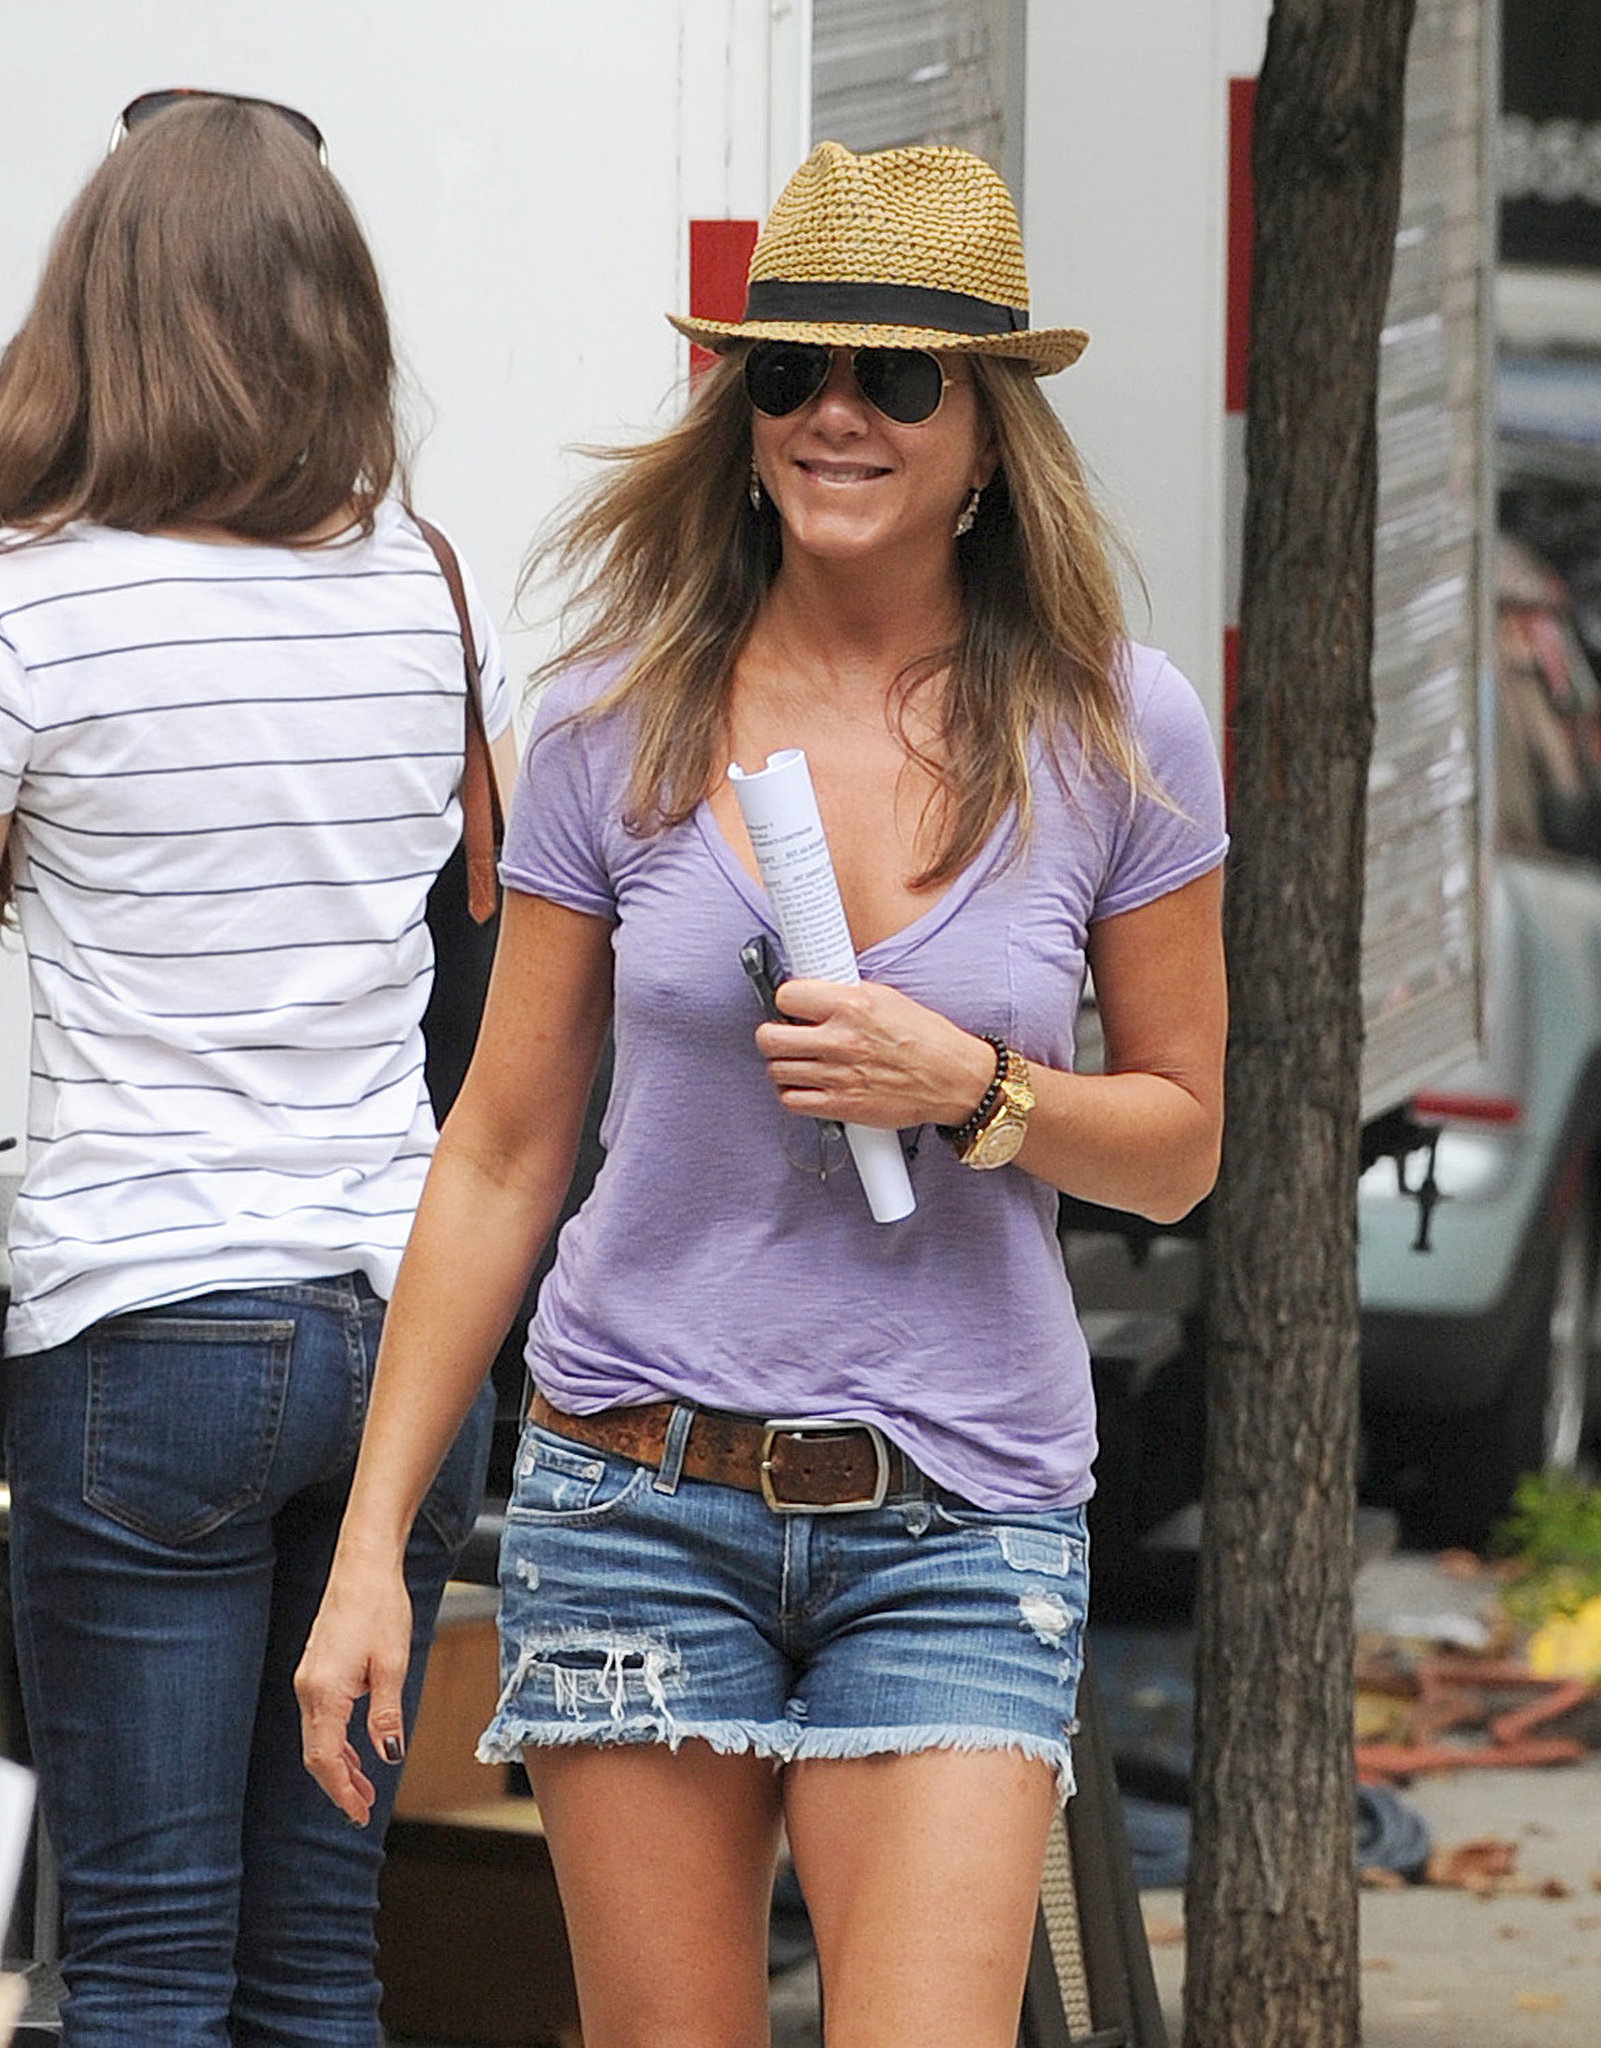 On July 23, Jennifer Aniston filmed Squirrels to t